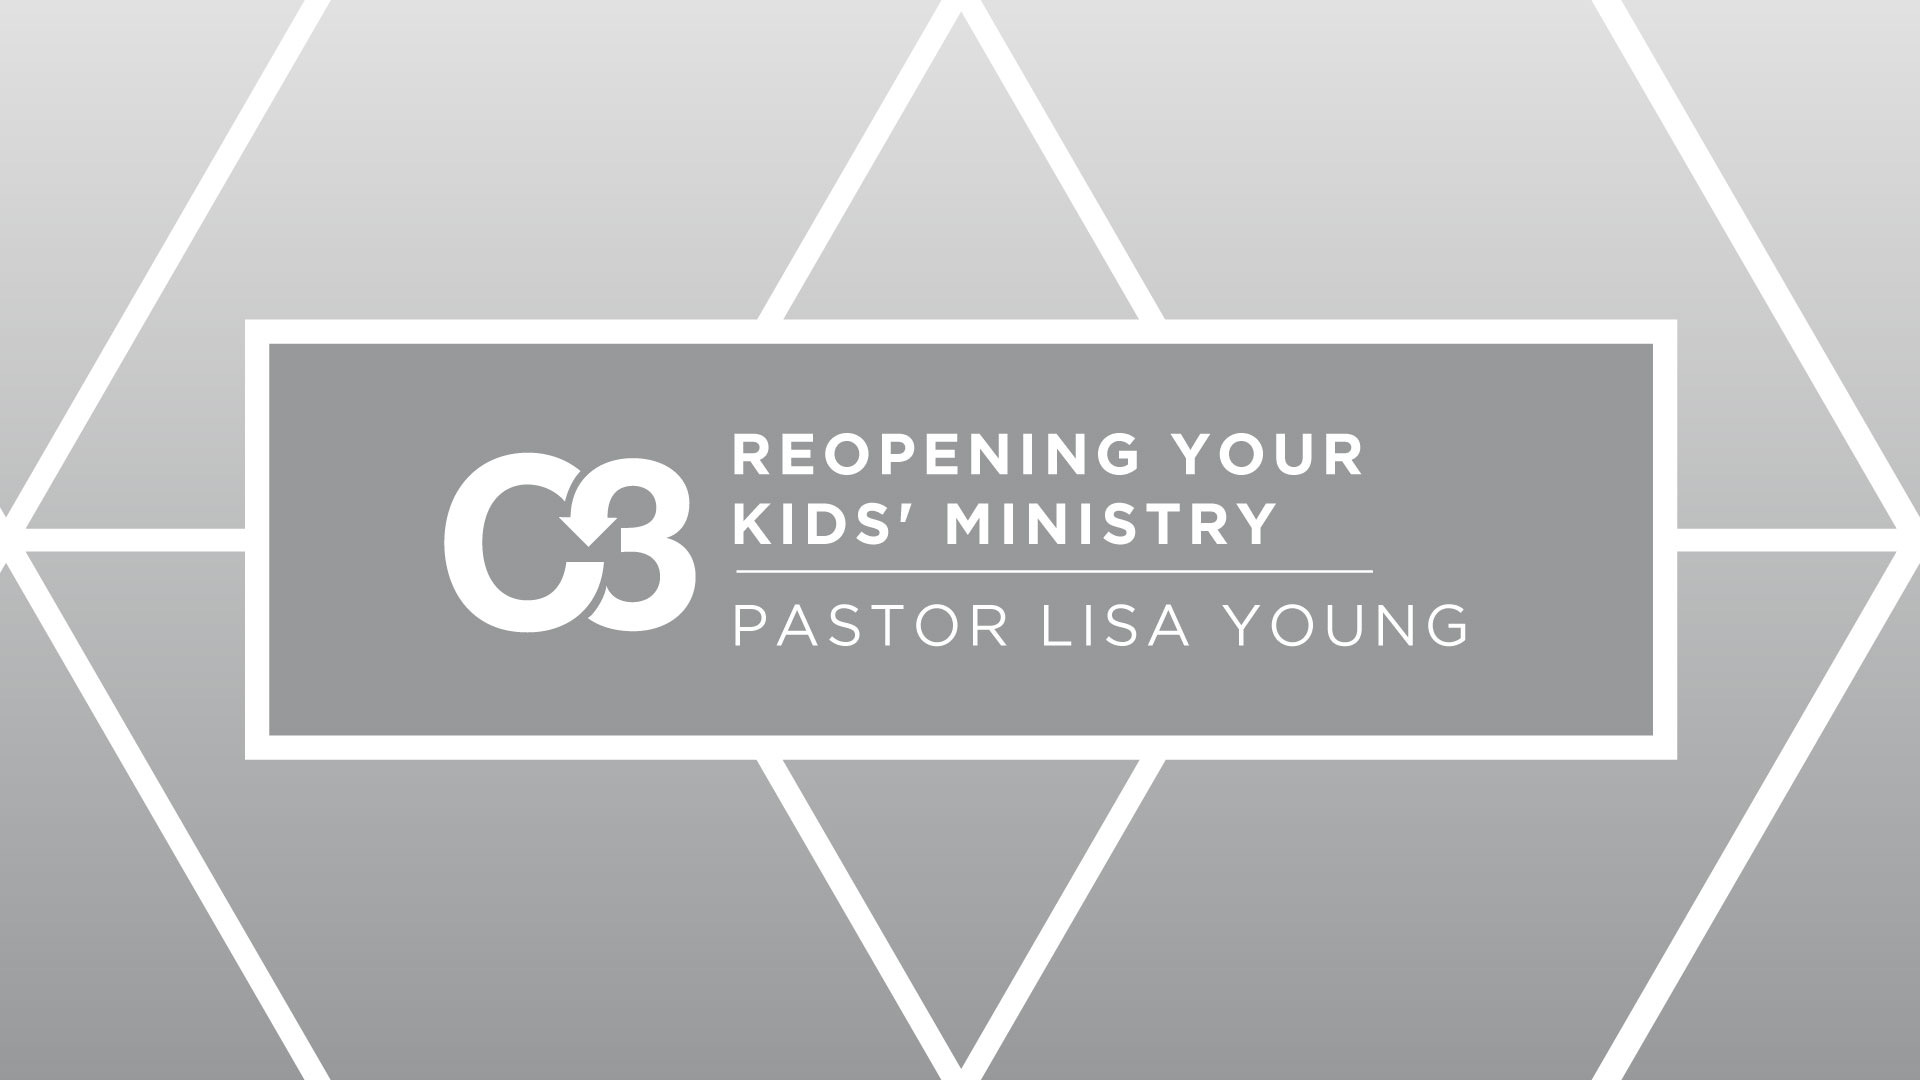 Reopening Your Kids' Ministry